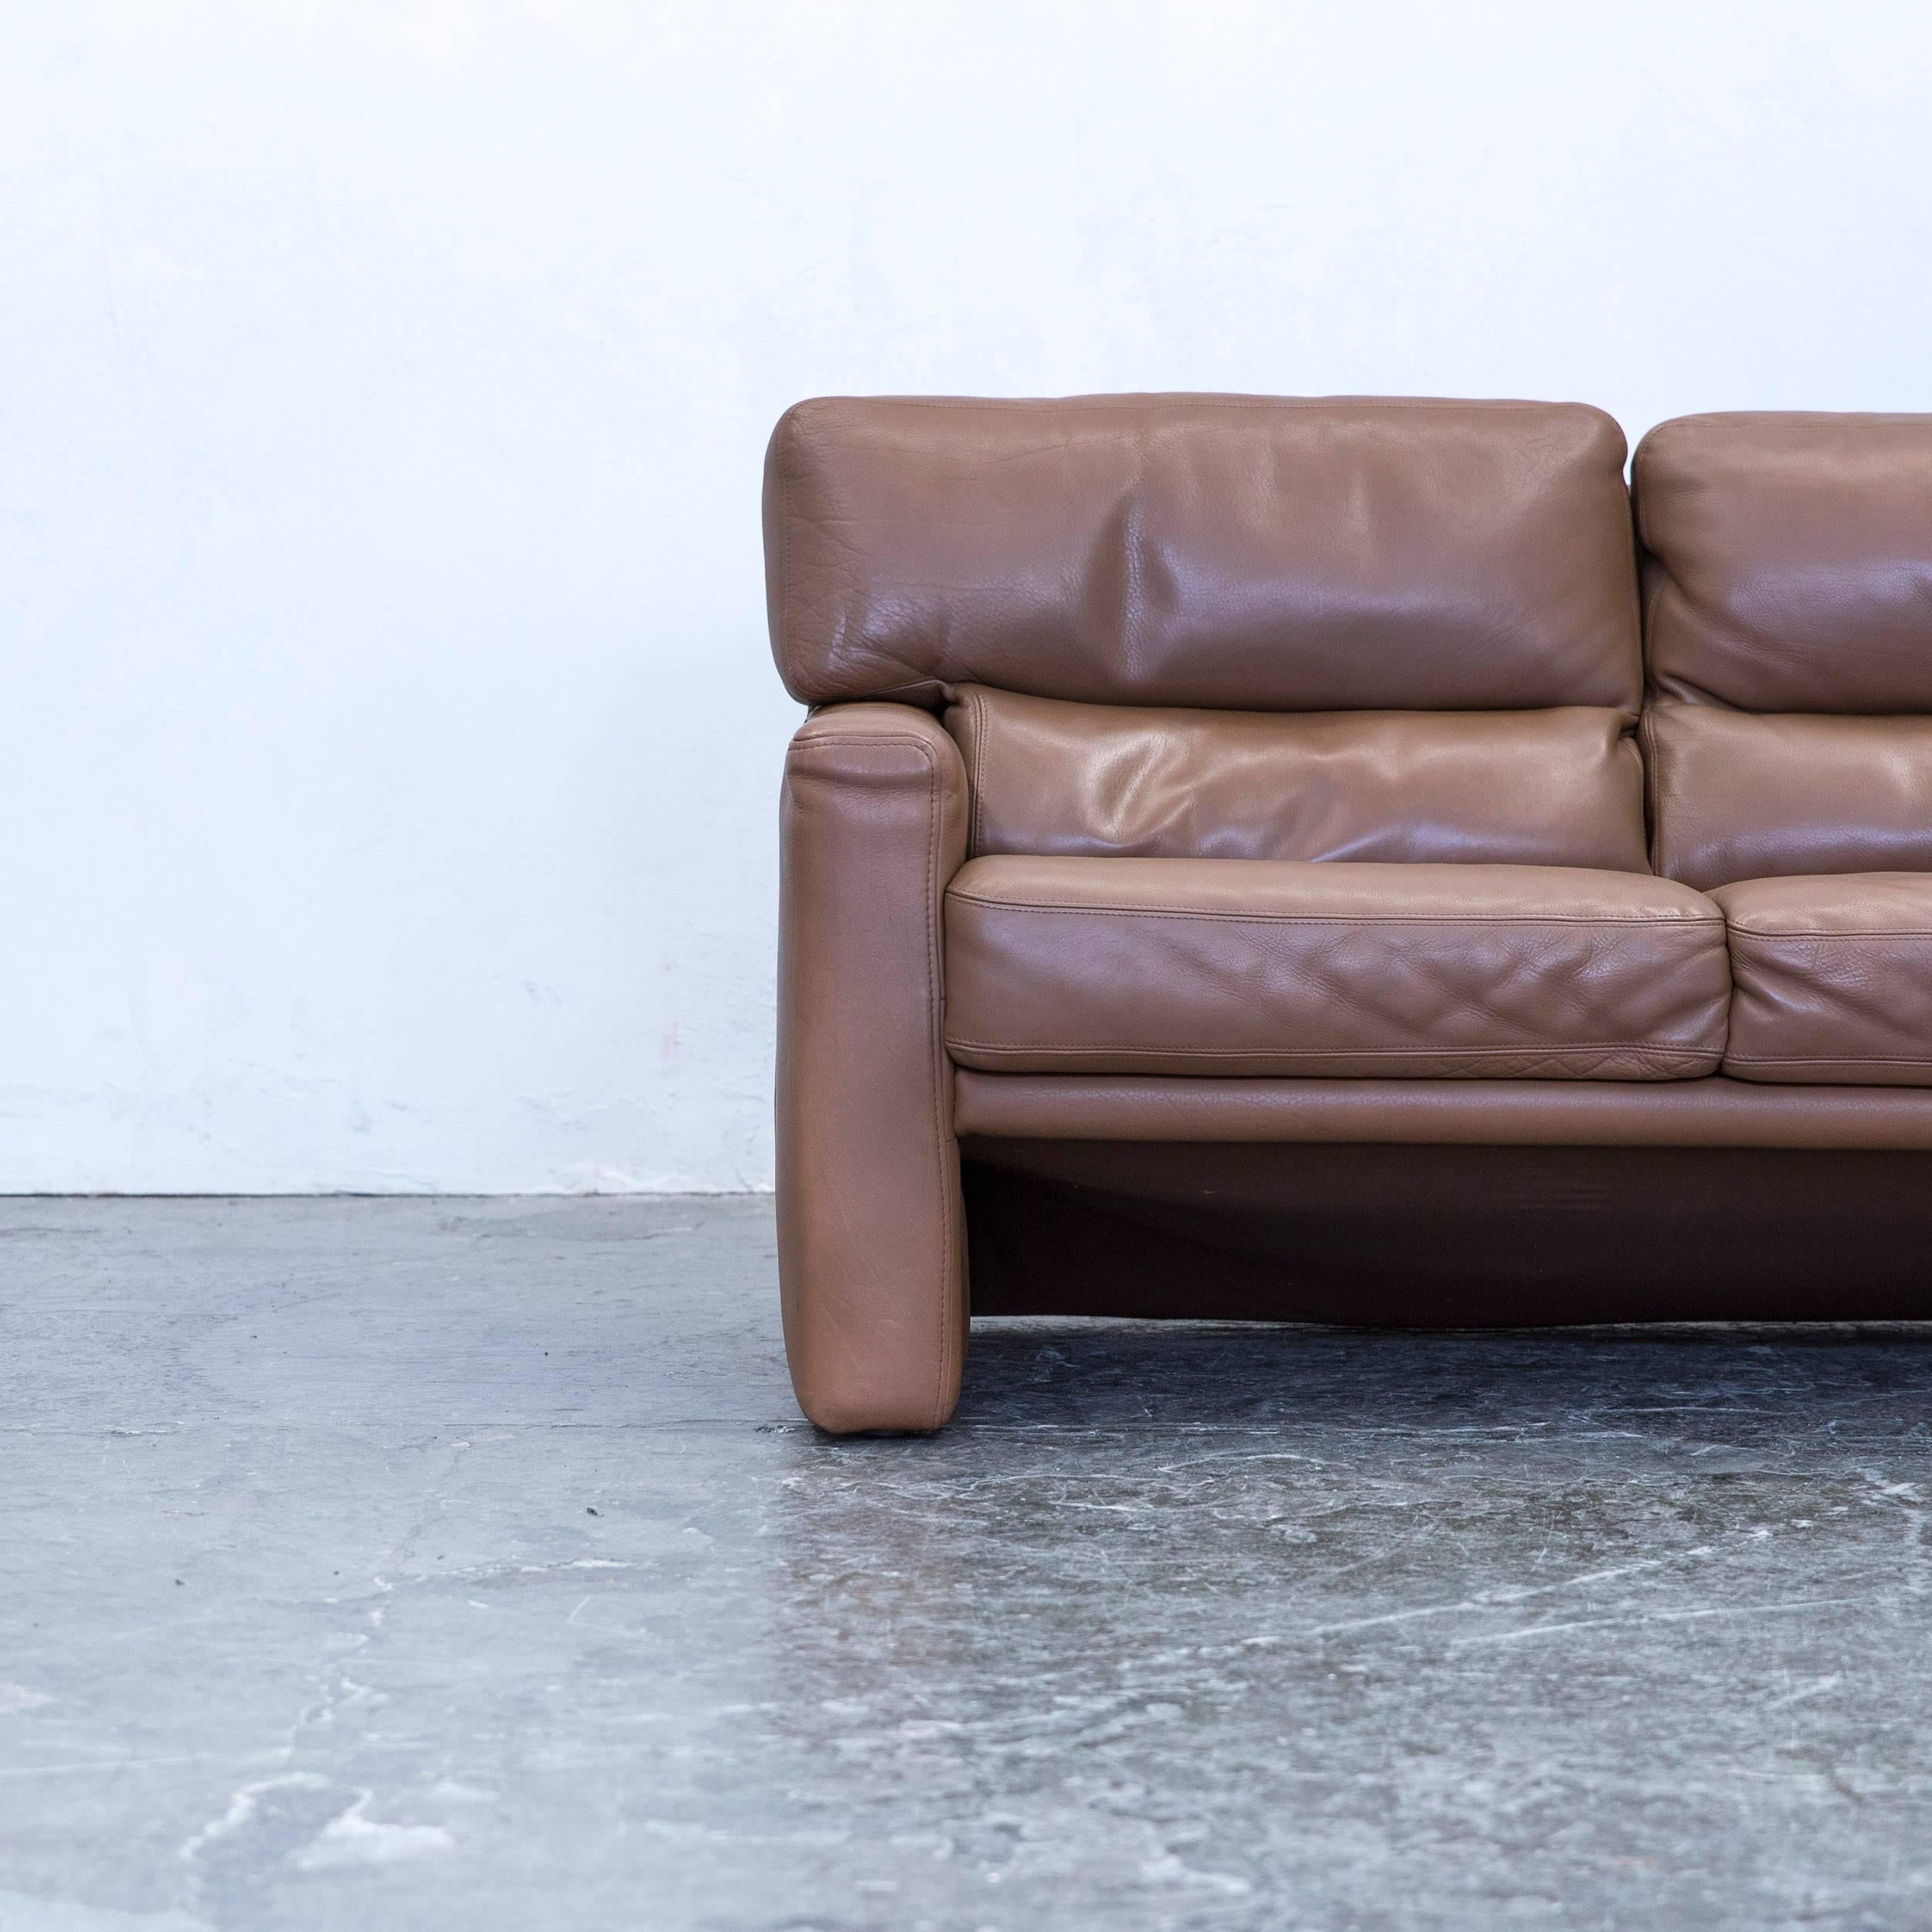 Br Thult Corner Sofa Bed Review: Sofa Leder Braun. Fabulous Full Size Of Couch Braunsdorf